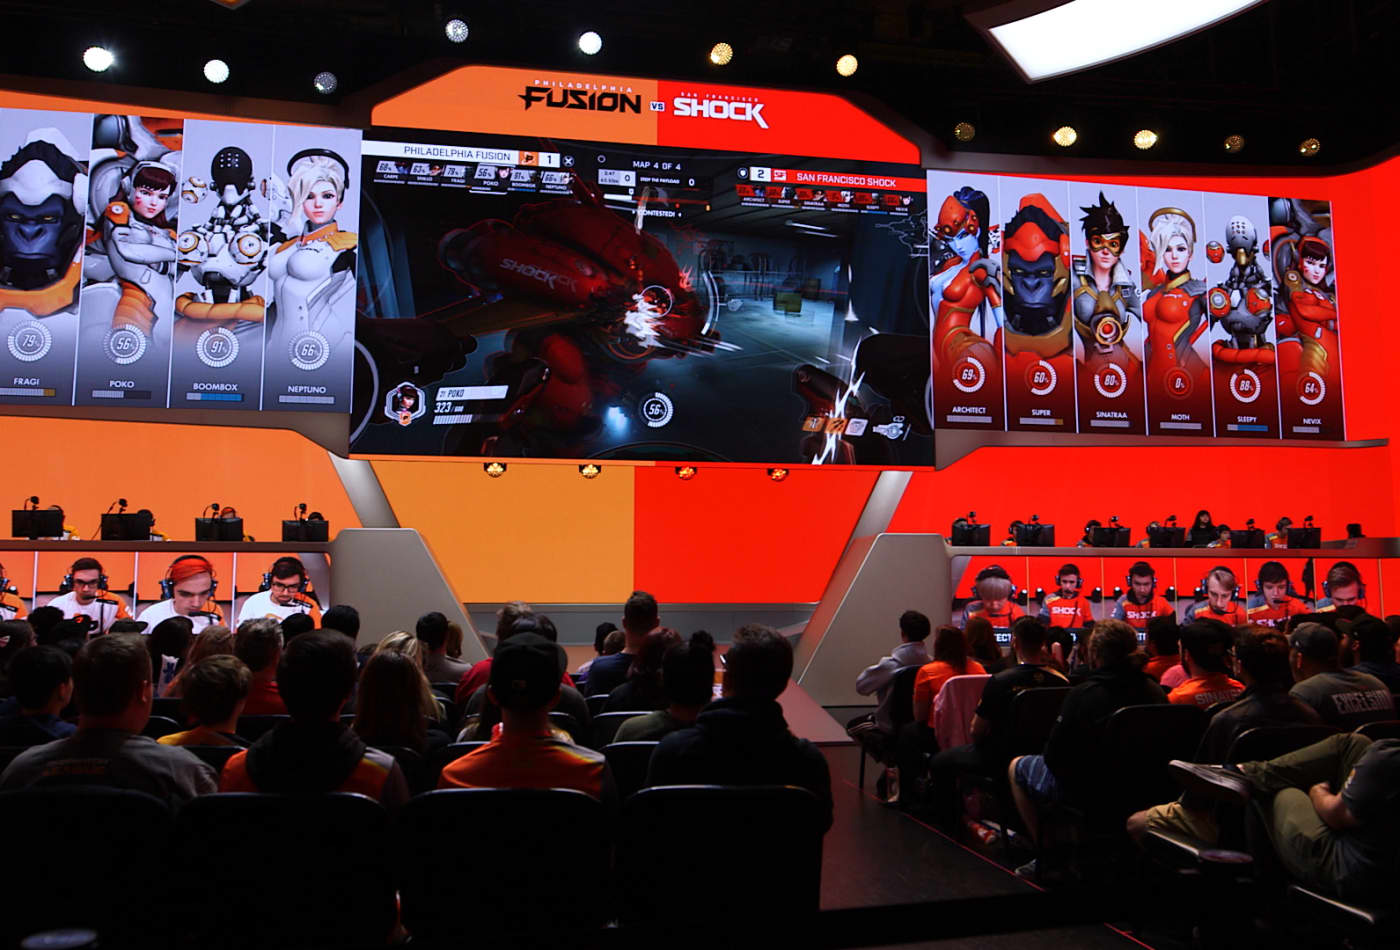 Overwatch League emulating major league sports but for gamers